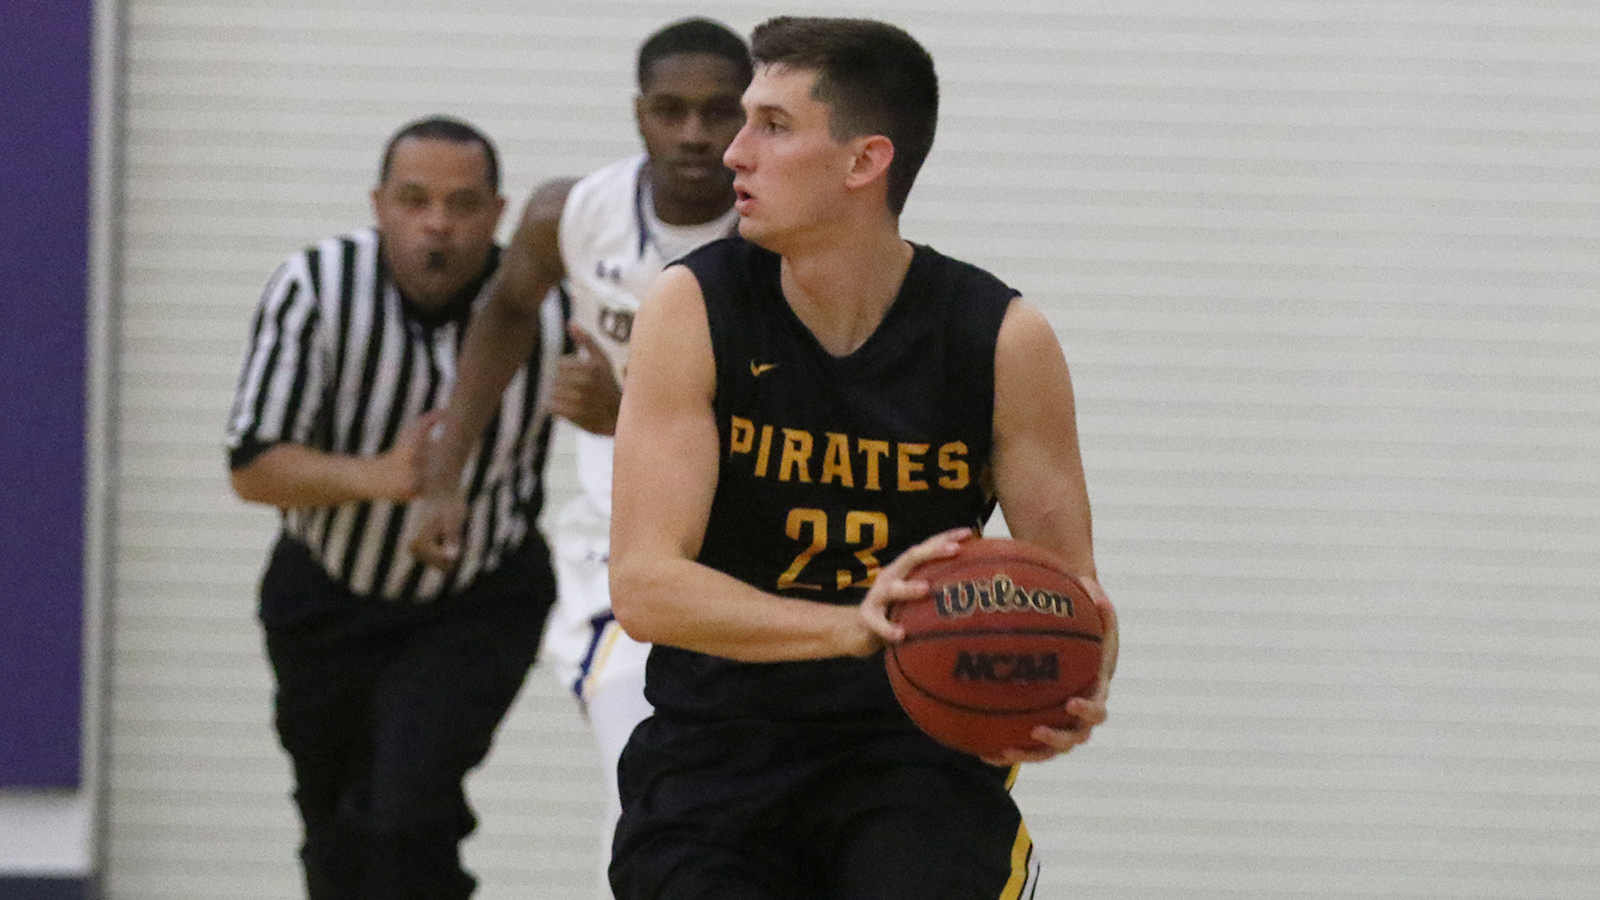 Pirates Hold Off Comets Behind Huge First Half